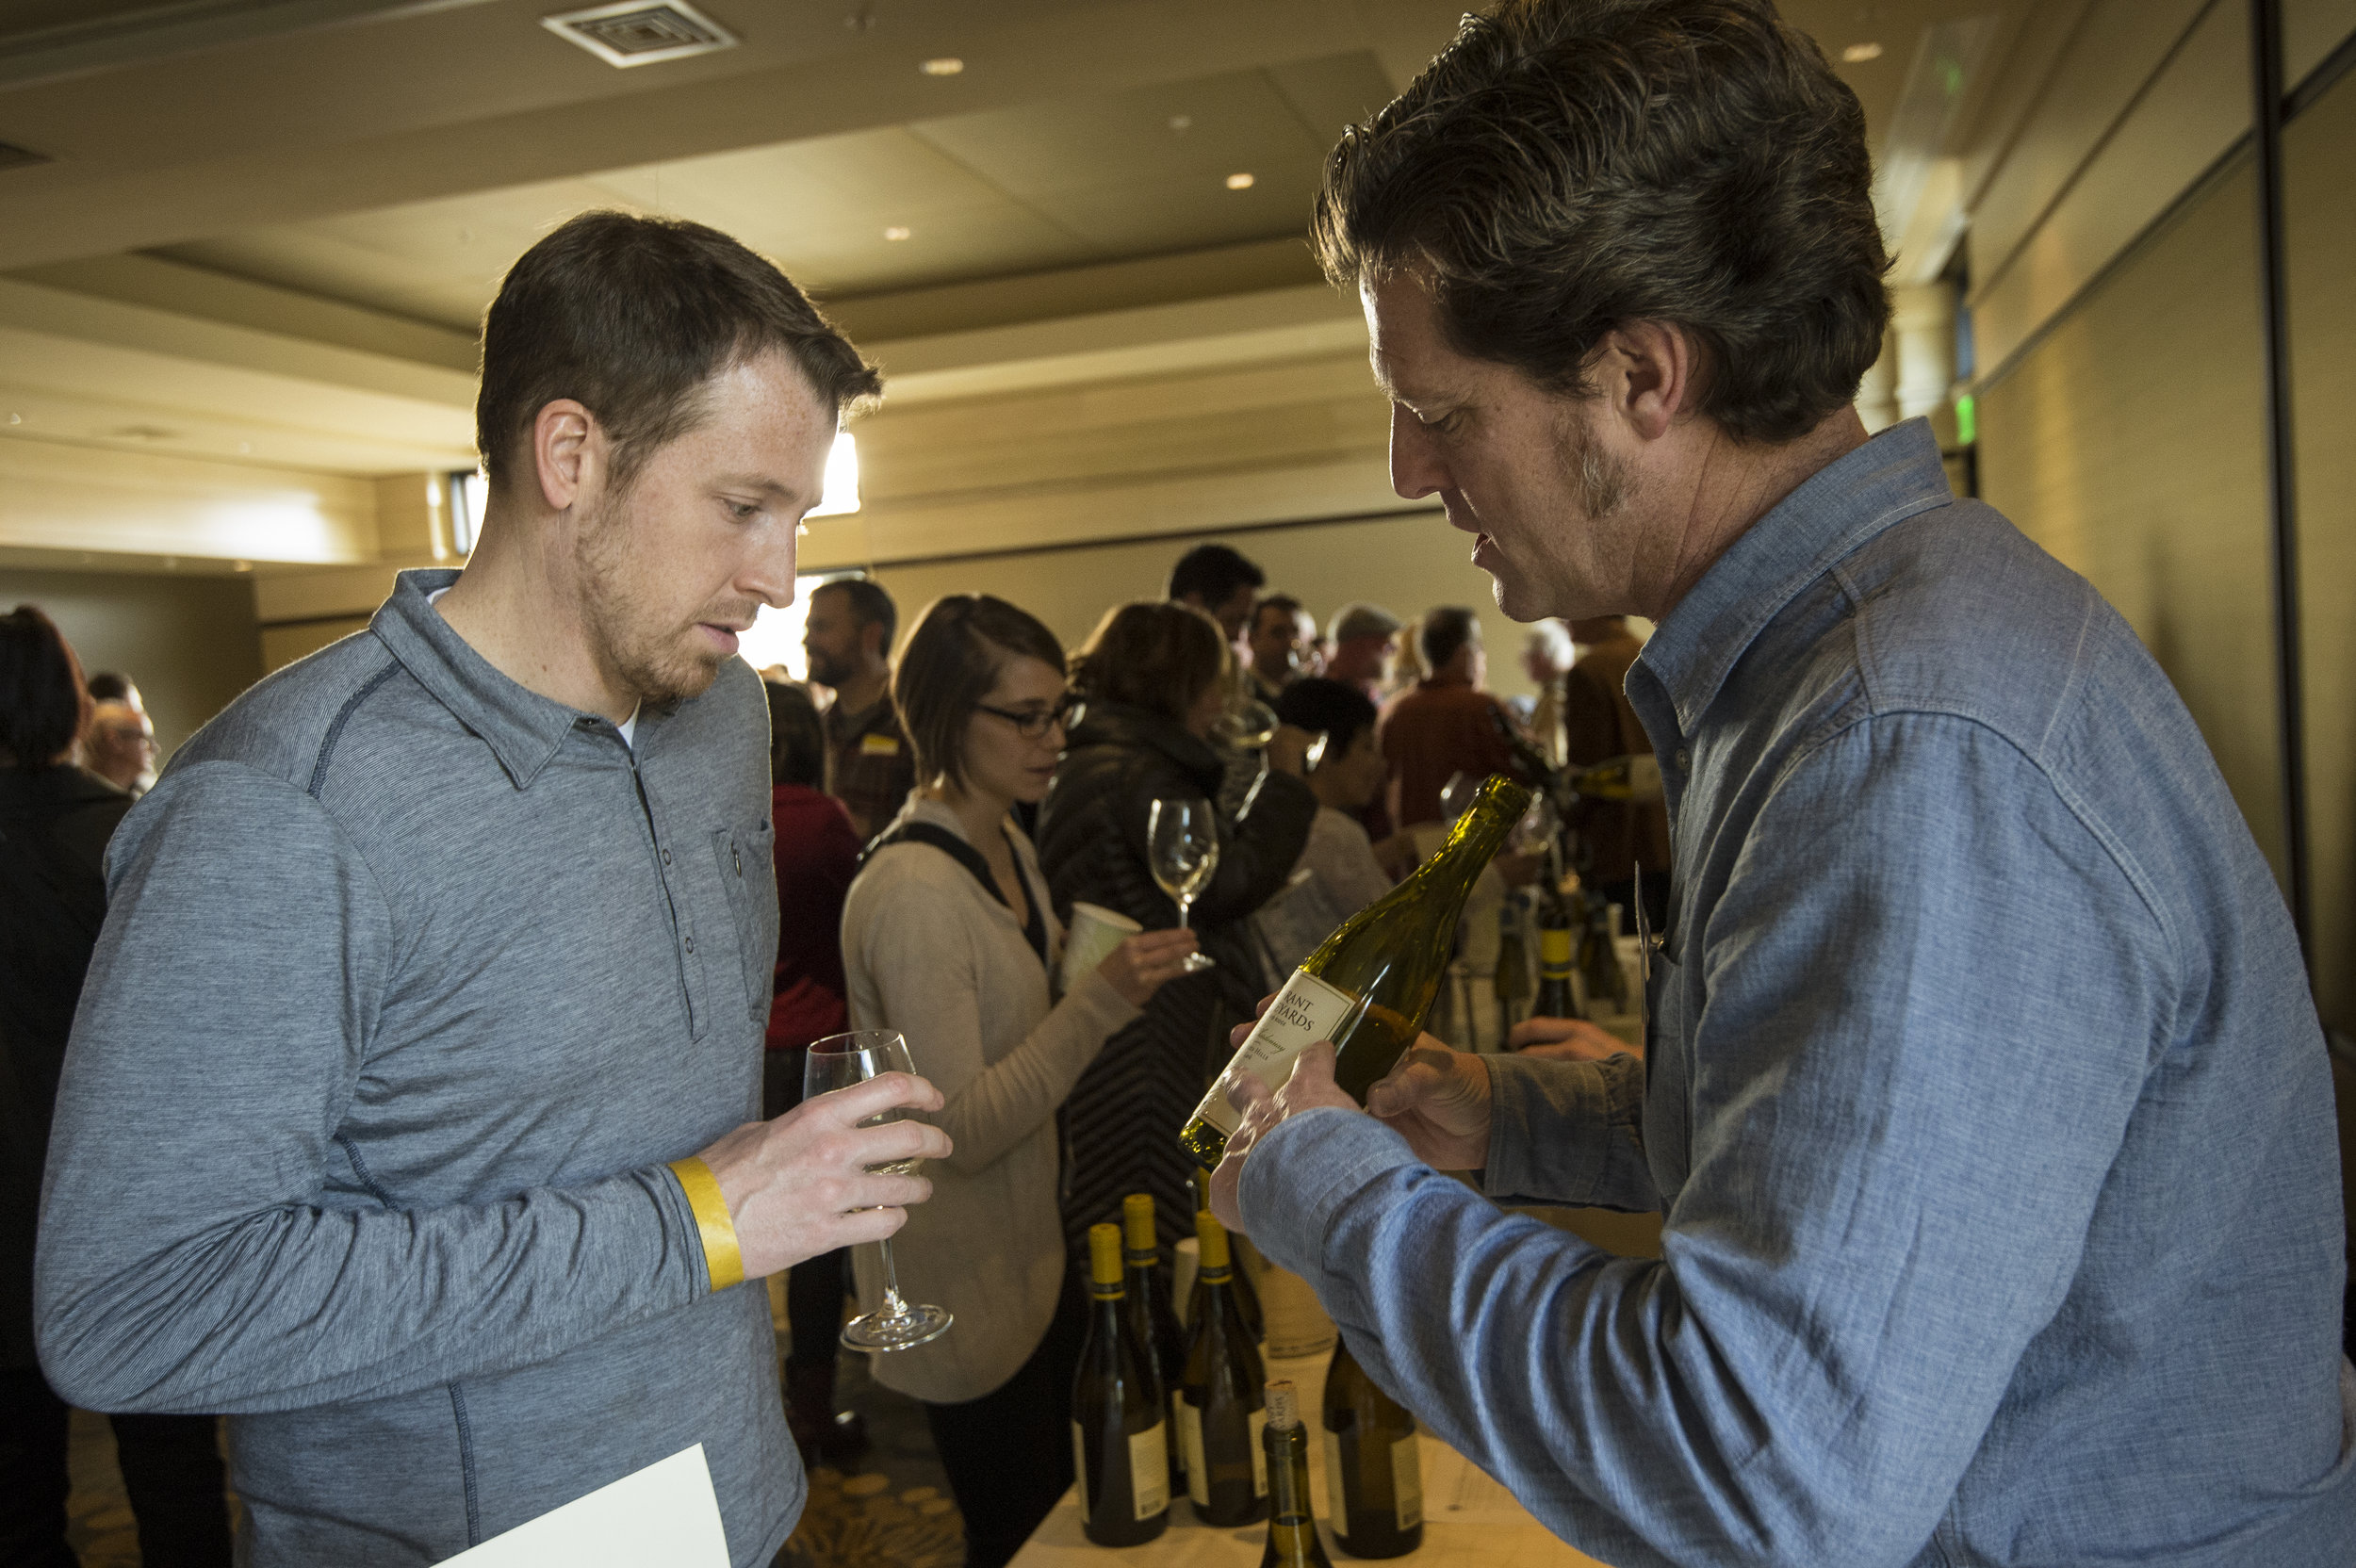 Held at the Allison Inn & Spa, the Oregon Chardonnay Celebration Grand Tasting was an opportunity for consumers to sample exquisite examples from nearly 50 Oregon wineries and talk to local winemakers. ©Andrea Johnson Photography